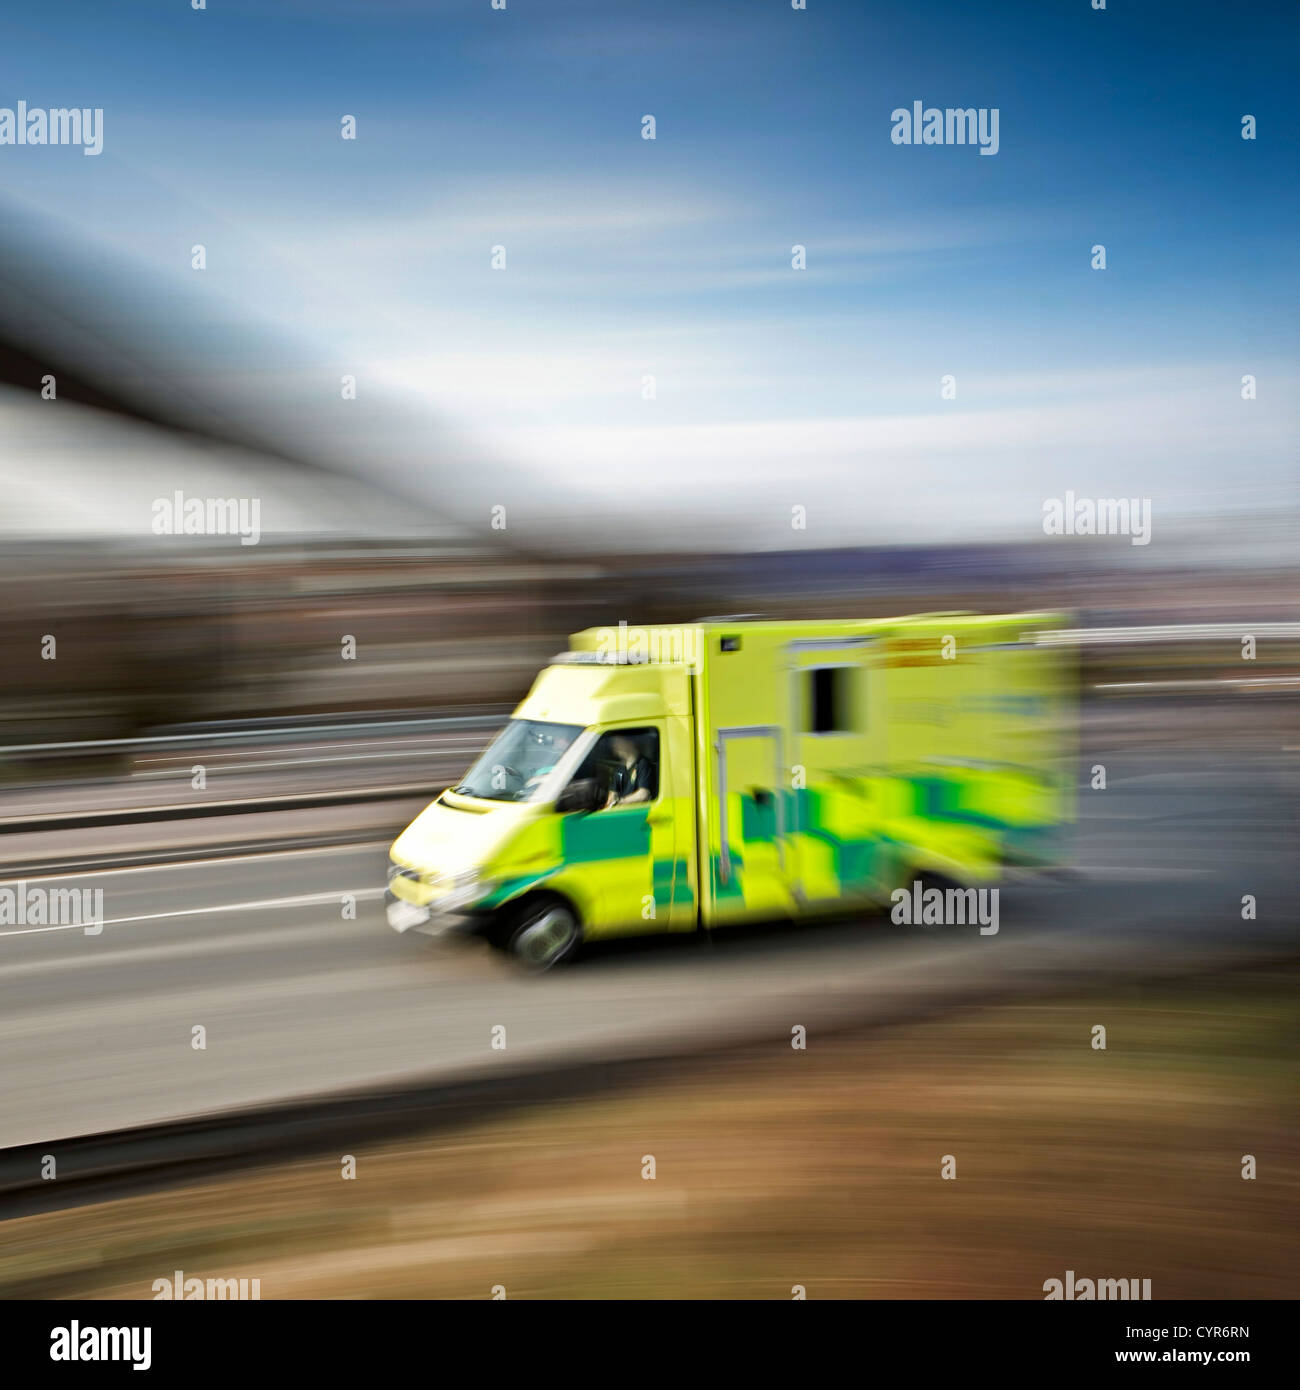 ambulance emergency response speeding along the motorway - Stock Image